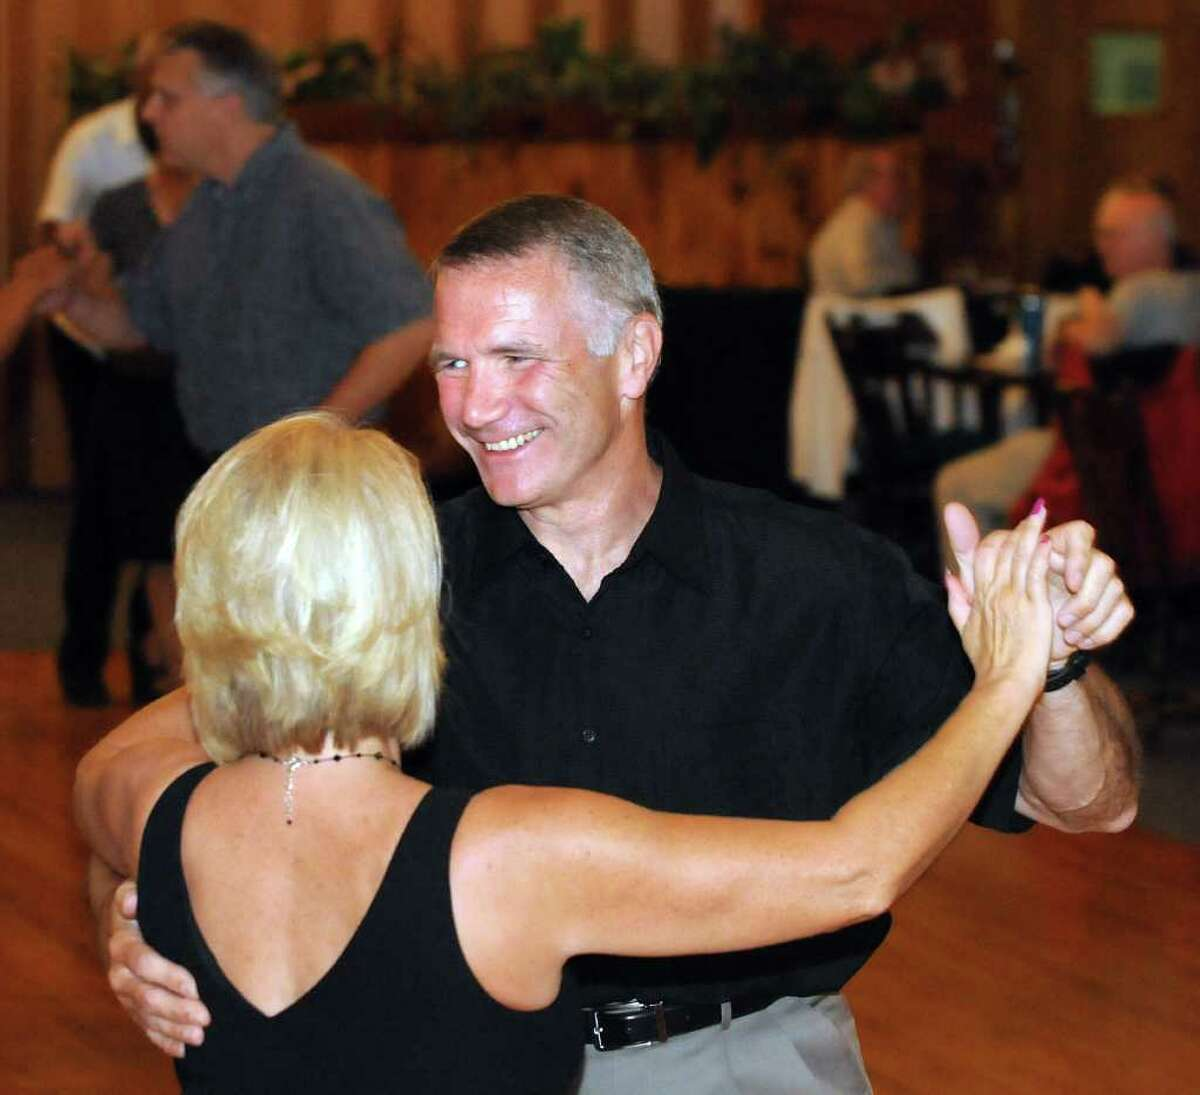 Ballroom dance instructor Ron Tritto, right, dances with instructor Karen Mason on Friday, Sept. 10, 2010, at EverGreen Country Club in Schodack, N.Y. (Cindy Schultz / Times Union)